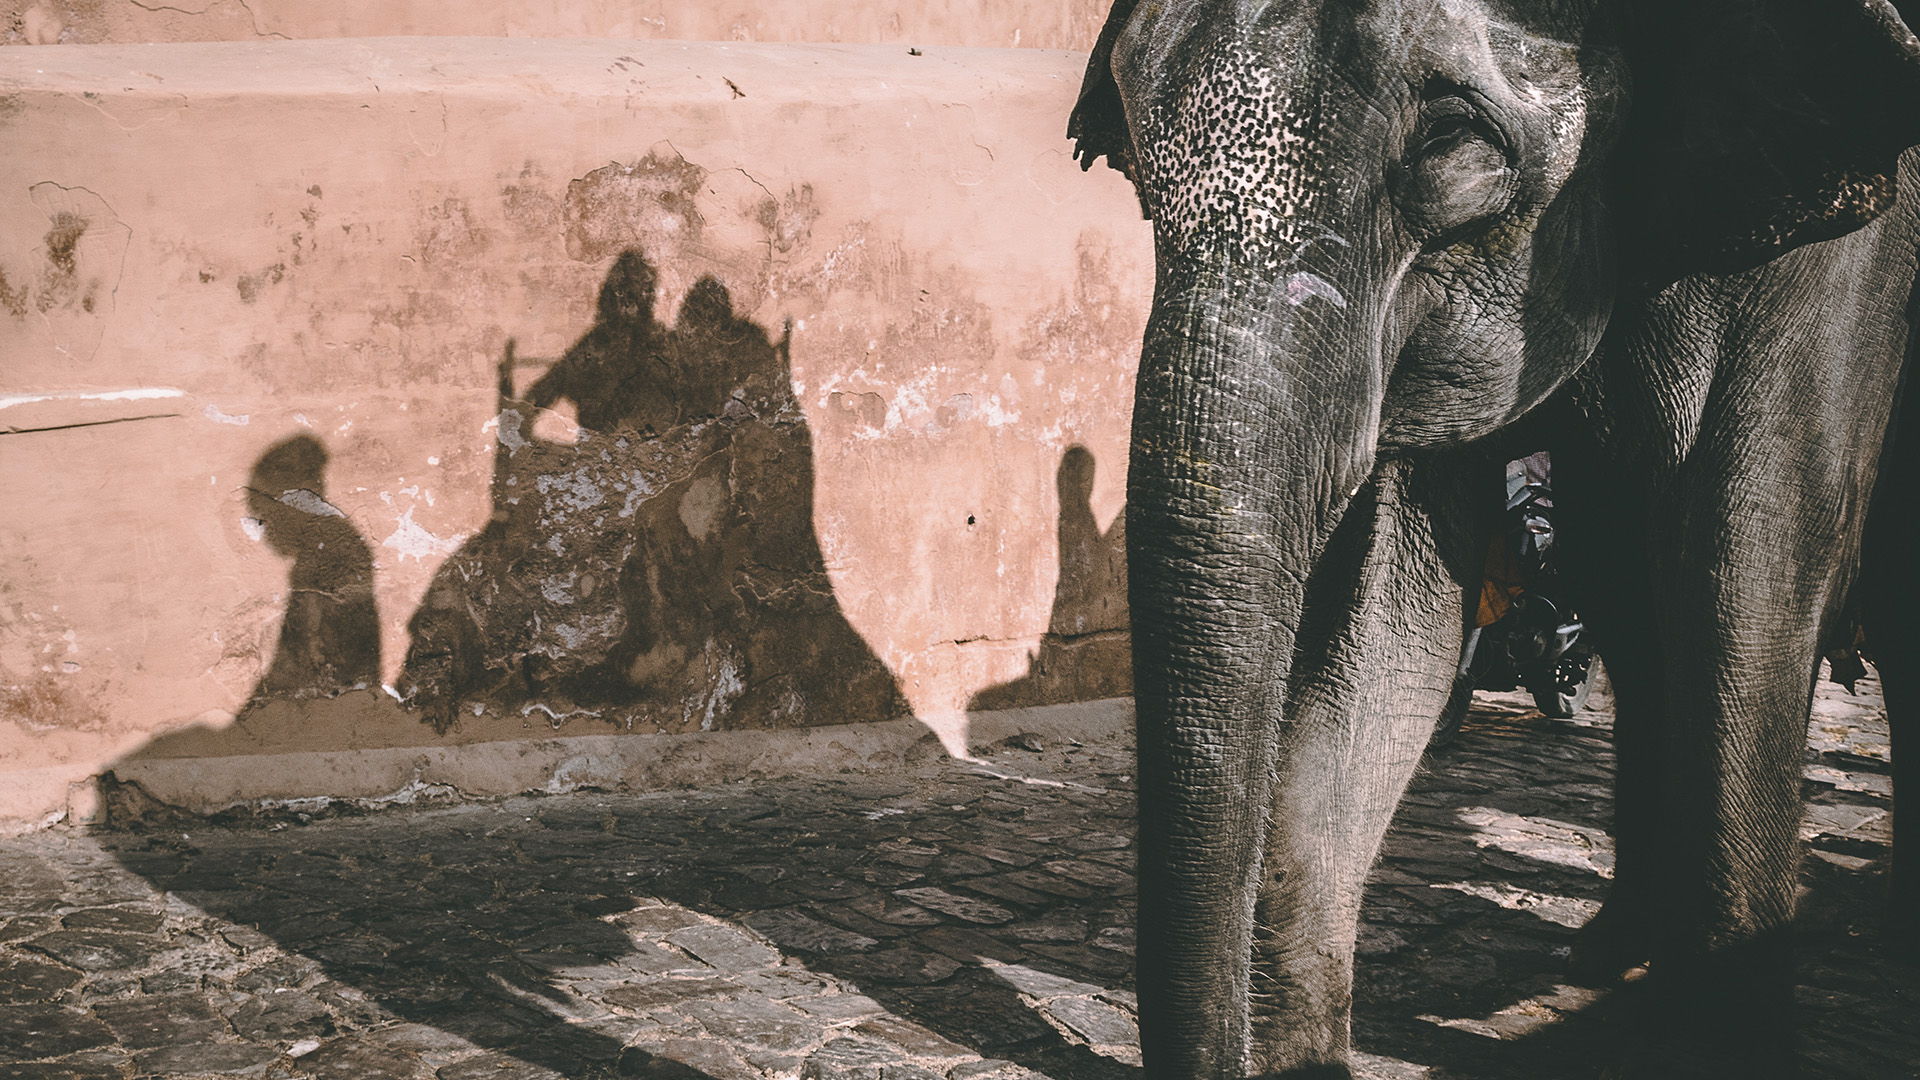 Retire Elephants From Rides At Amer Fort In Jaipur India, Says World Animal Protection